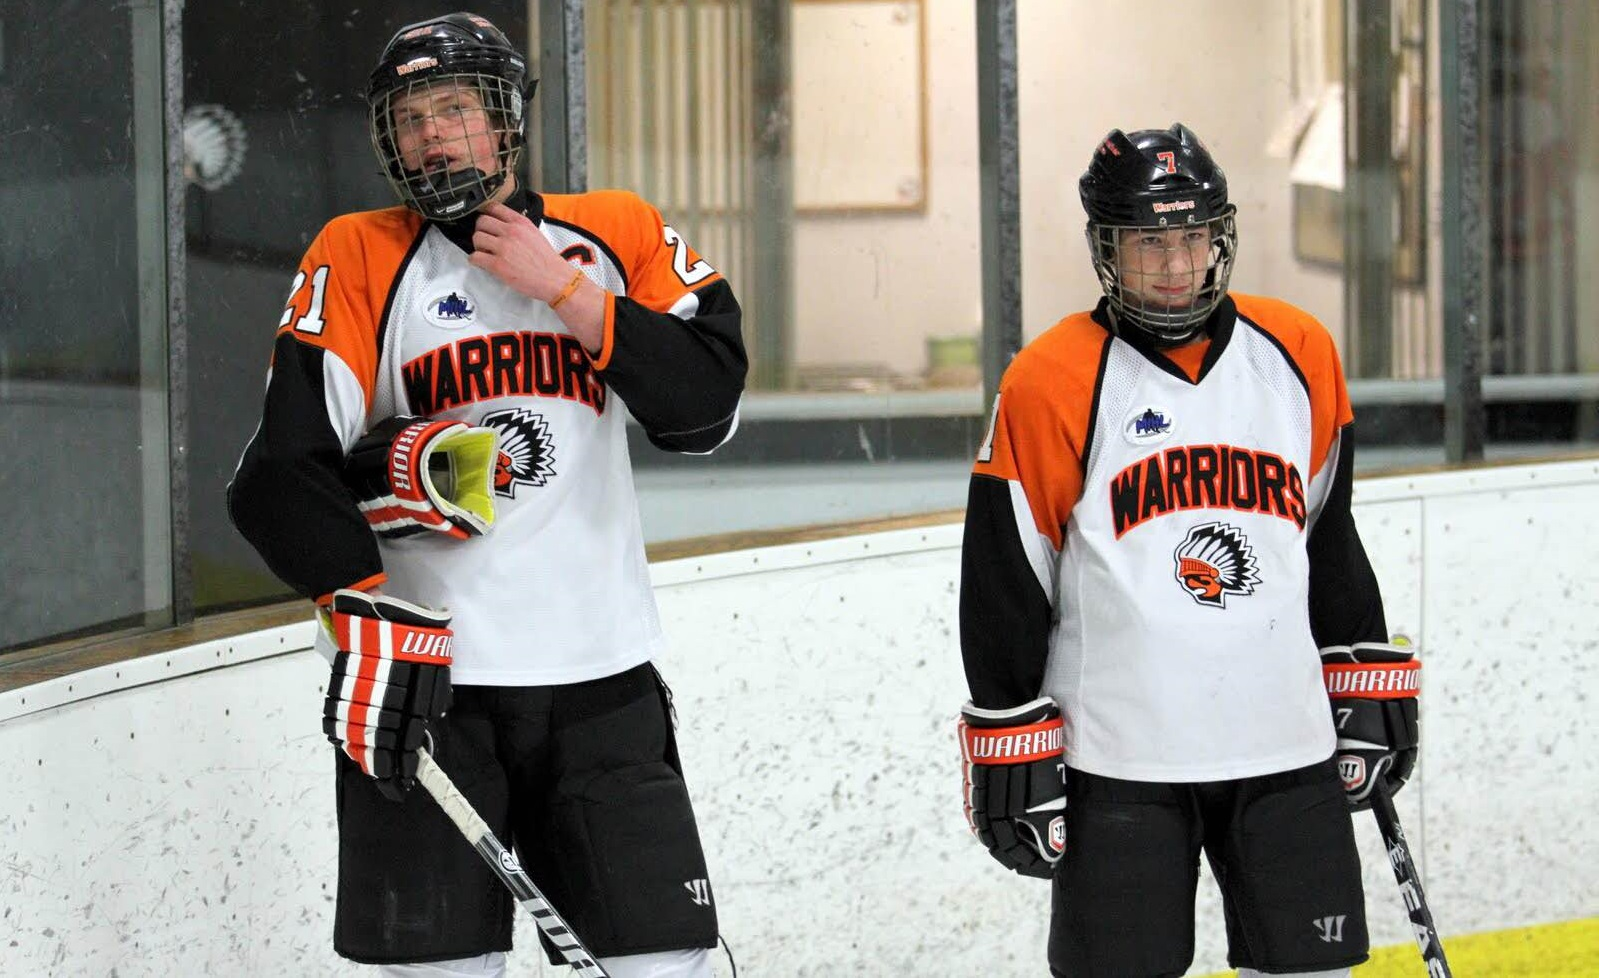 As a high school hockey player, Russell Cicerone, right, was much smaller than average. (via Cicerones)